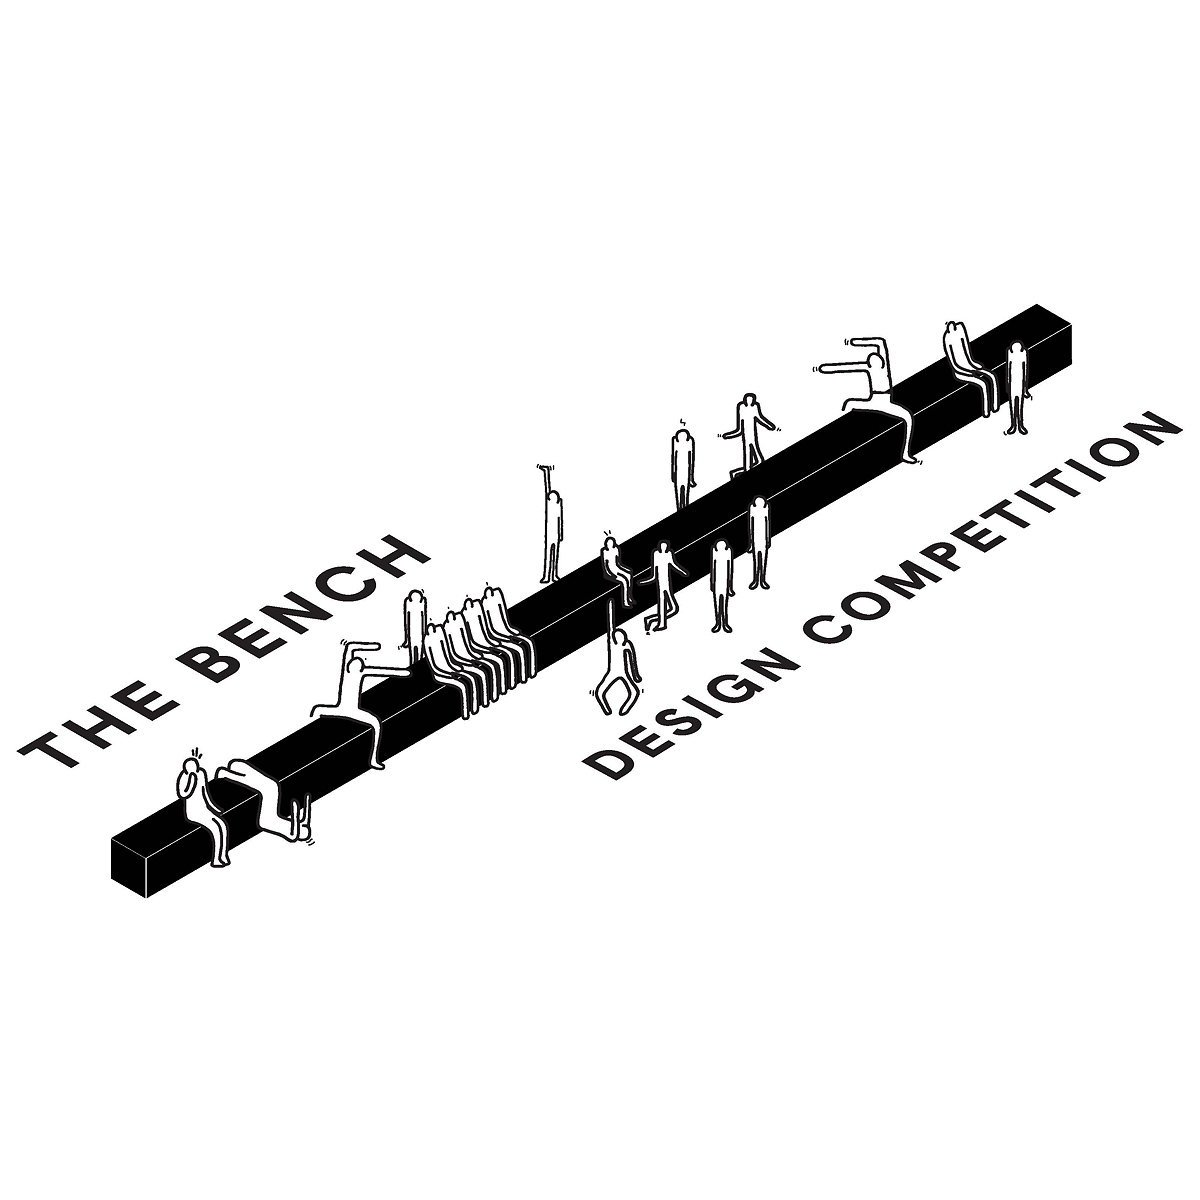 The Bench 2016 Design Competition